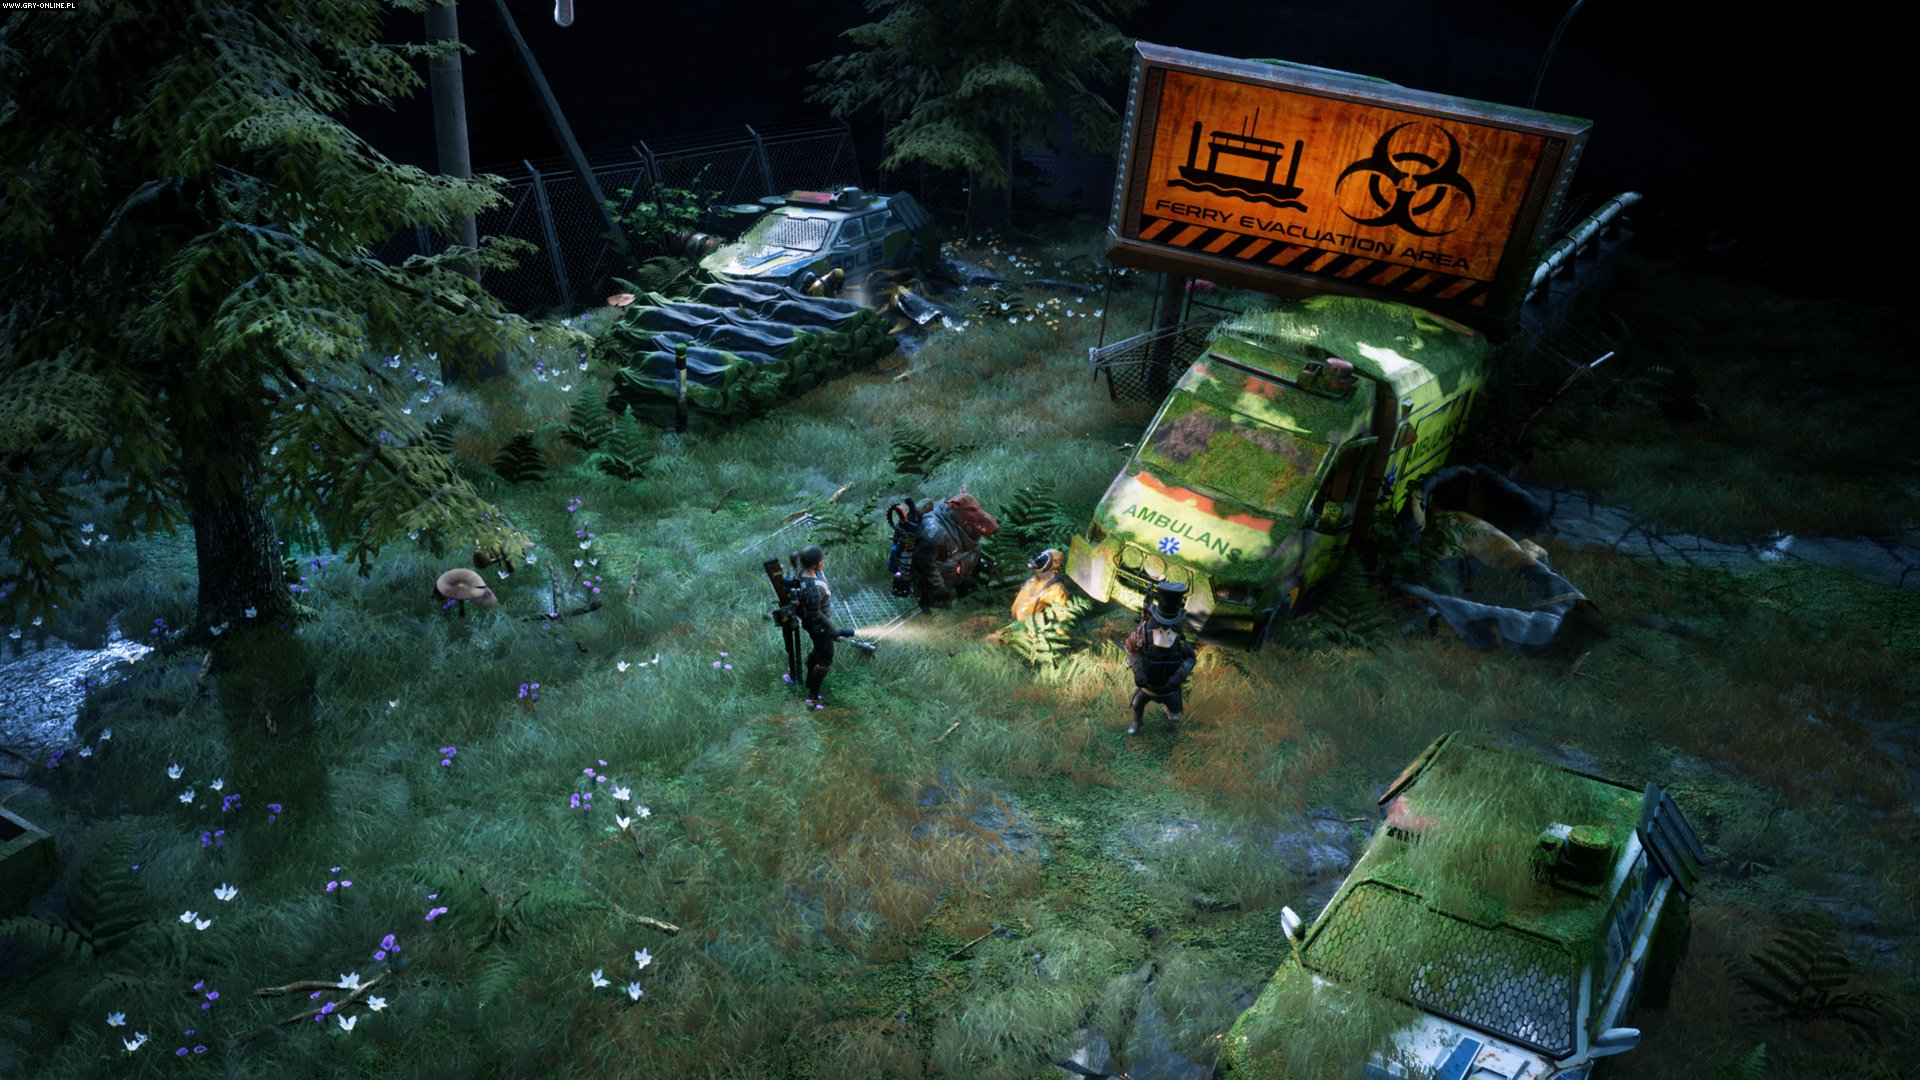 Mutant Year Zero: Road to Eden PC, PS4, XONE Games Image 19/31, The Bearded Ladies, FunCom